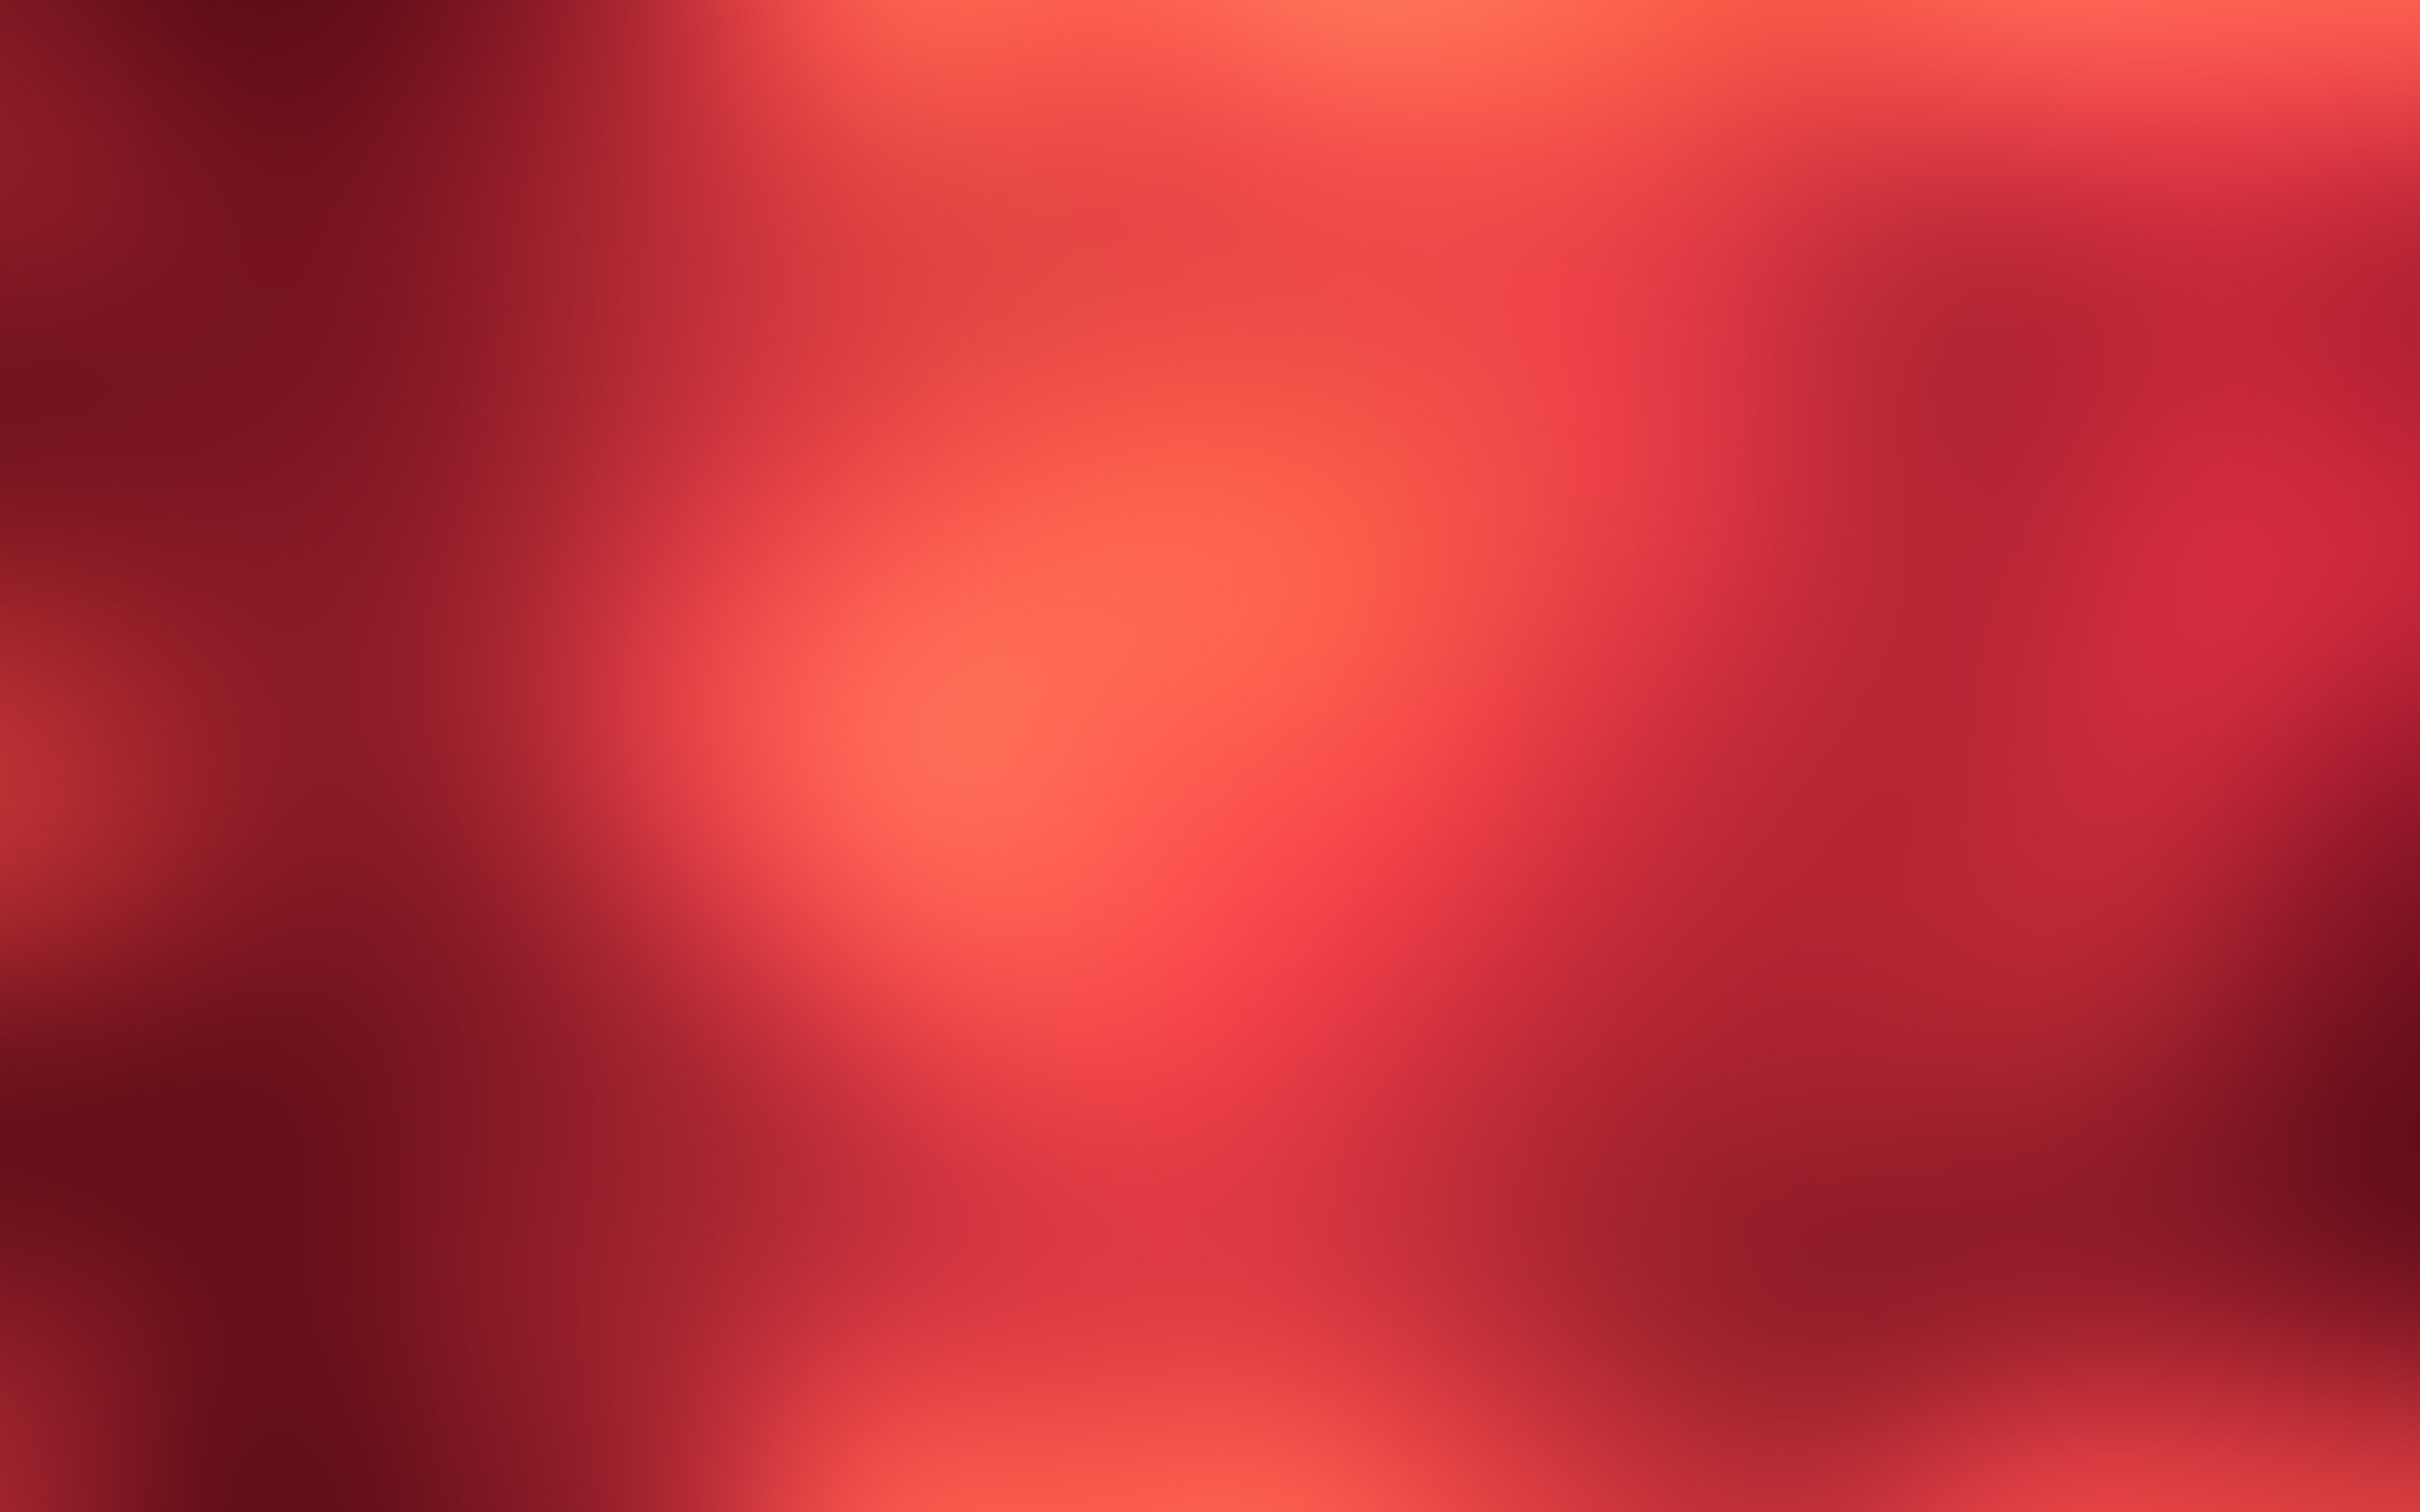 Gradient Red Simple Background 705766 2048x1536